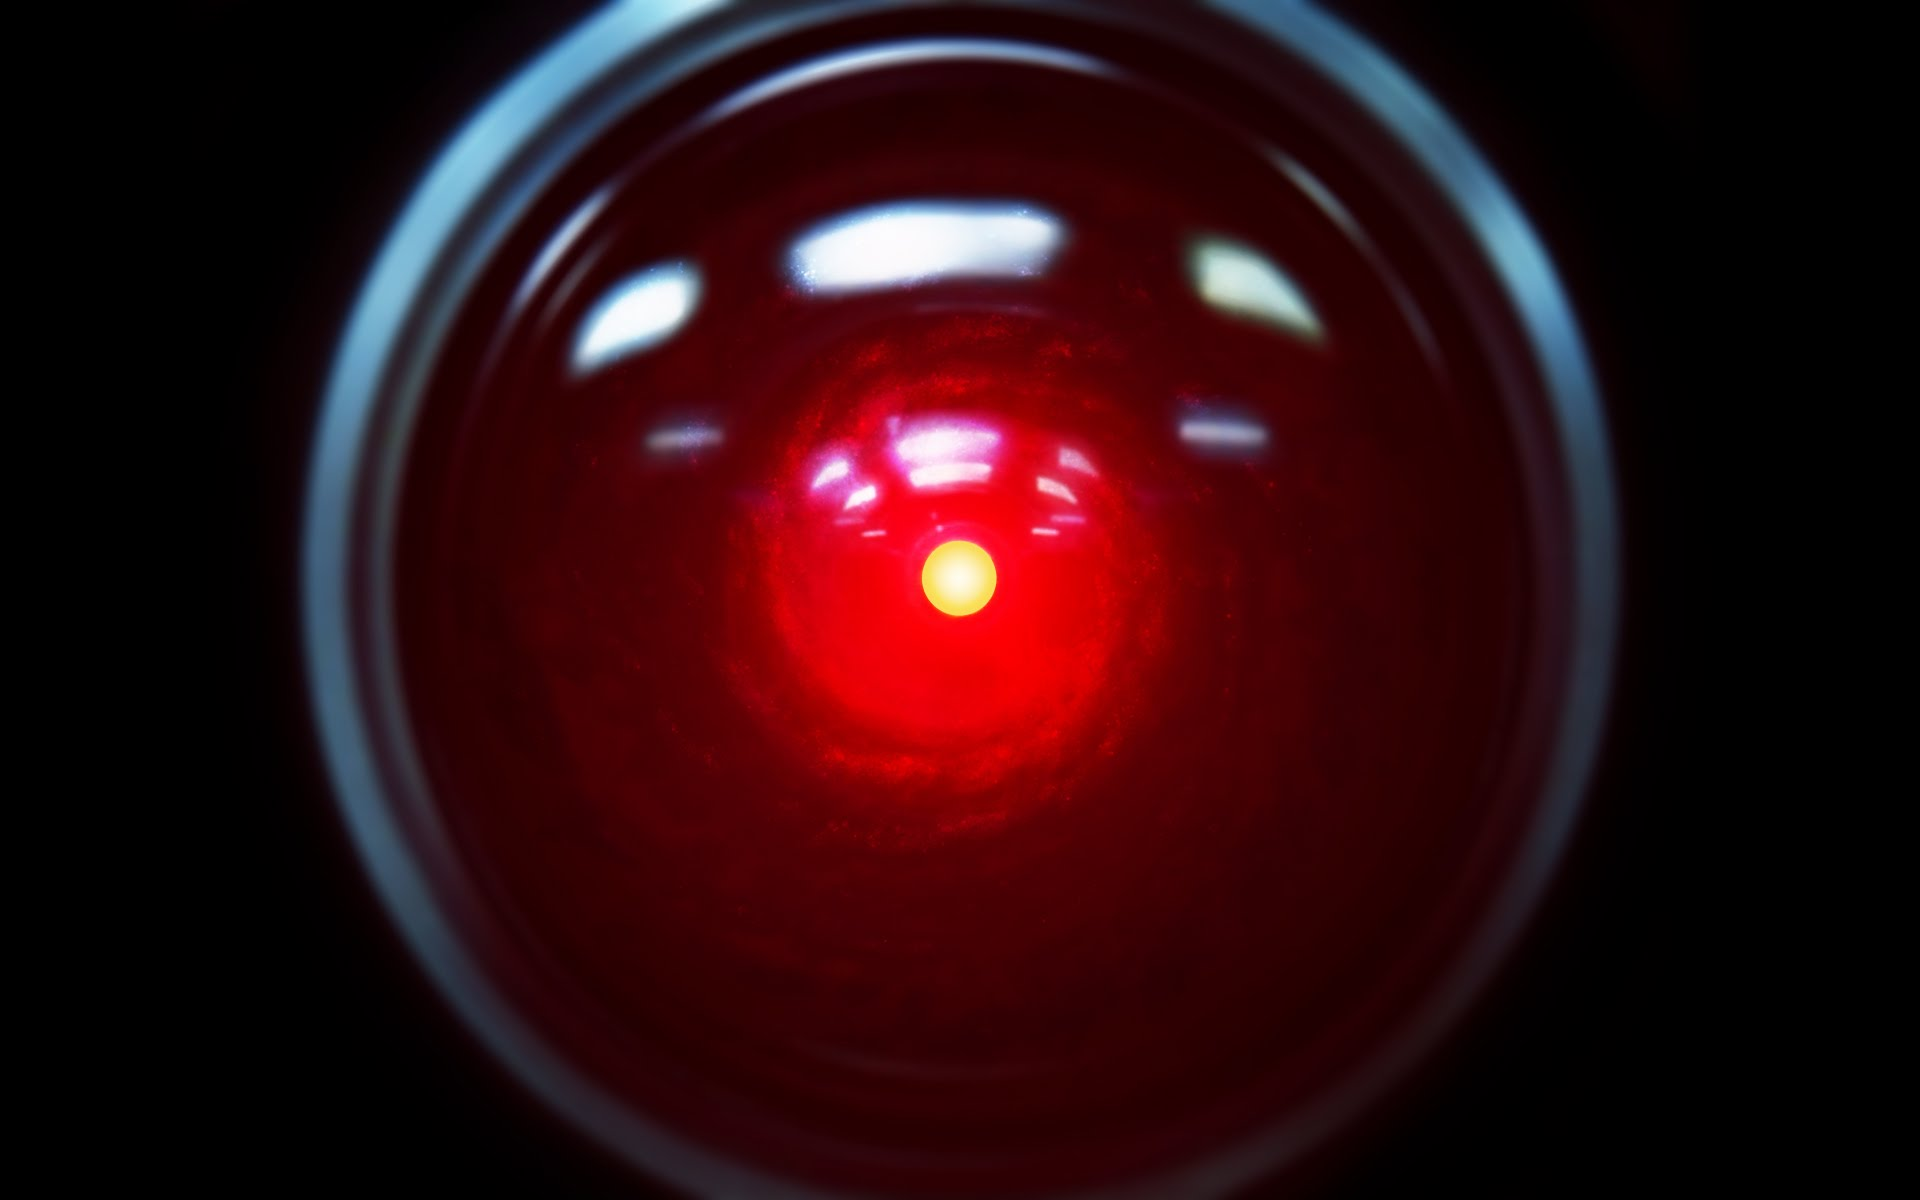 HAL_9000 space odyssey